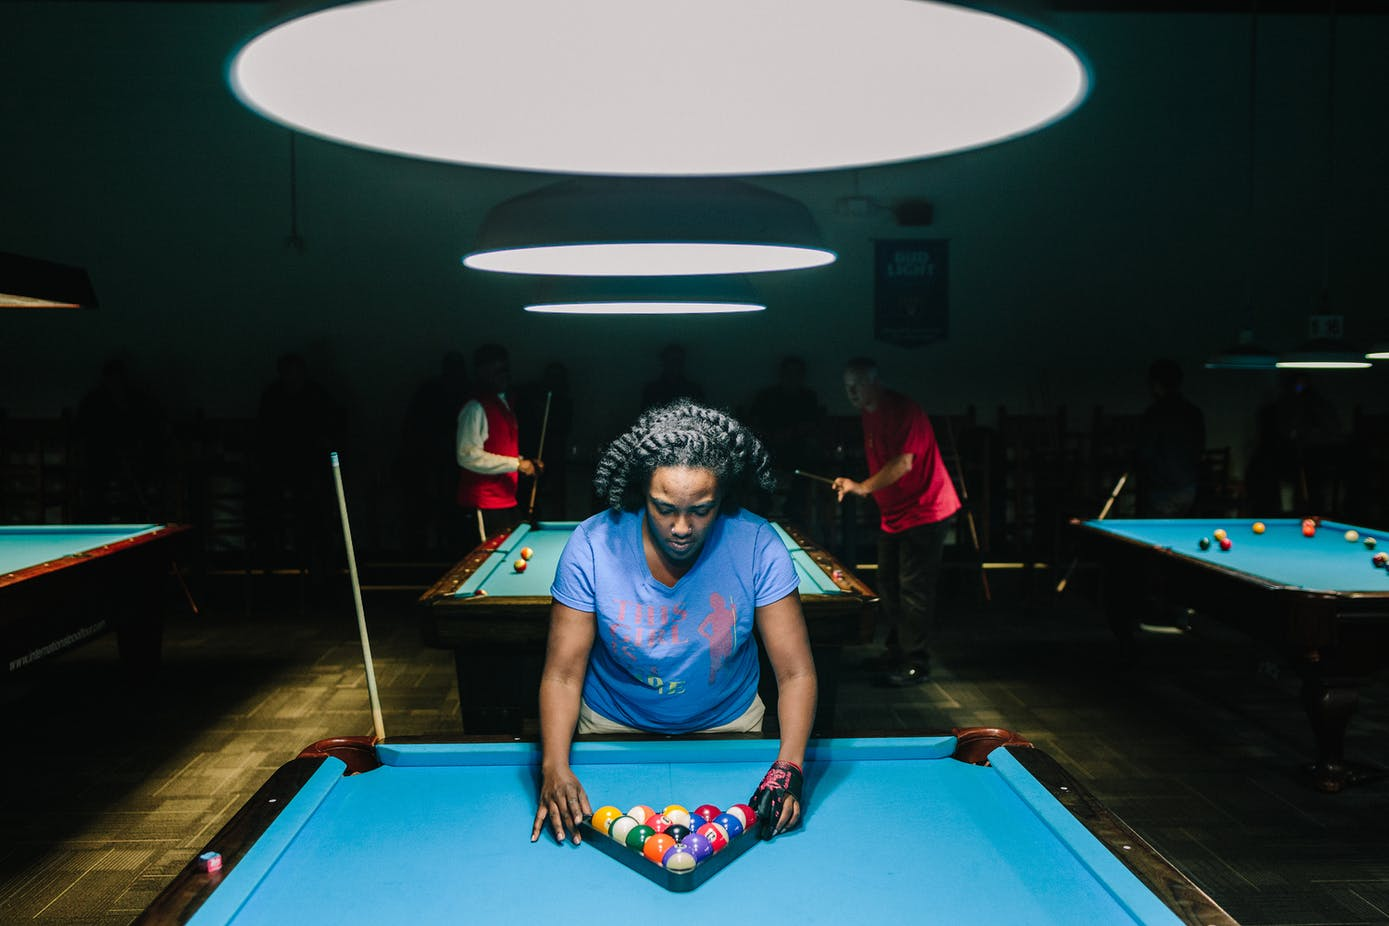 83fda108 Amani Ali plays with her team during a weekly billiards tournament at the  Broken Rack in Emeryville, California.